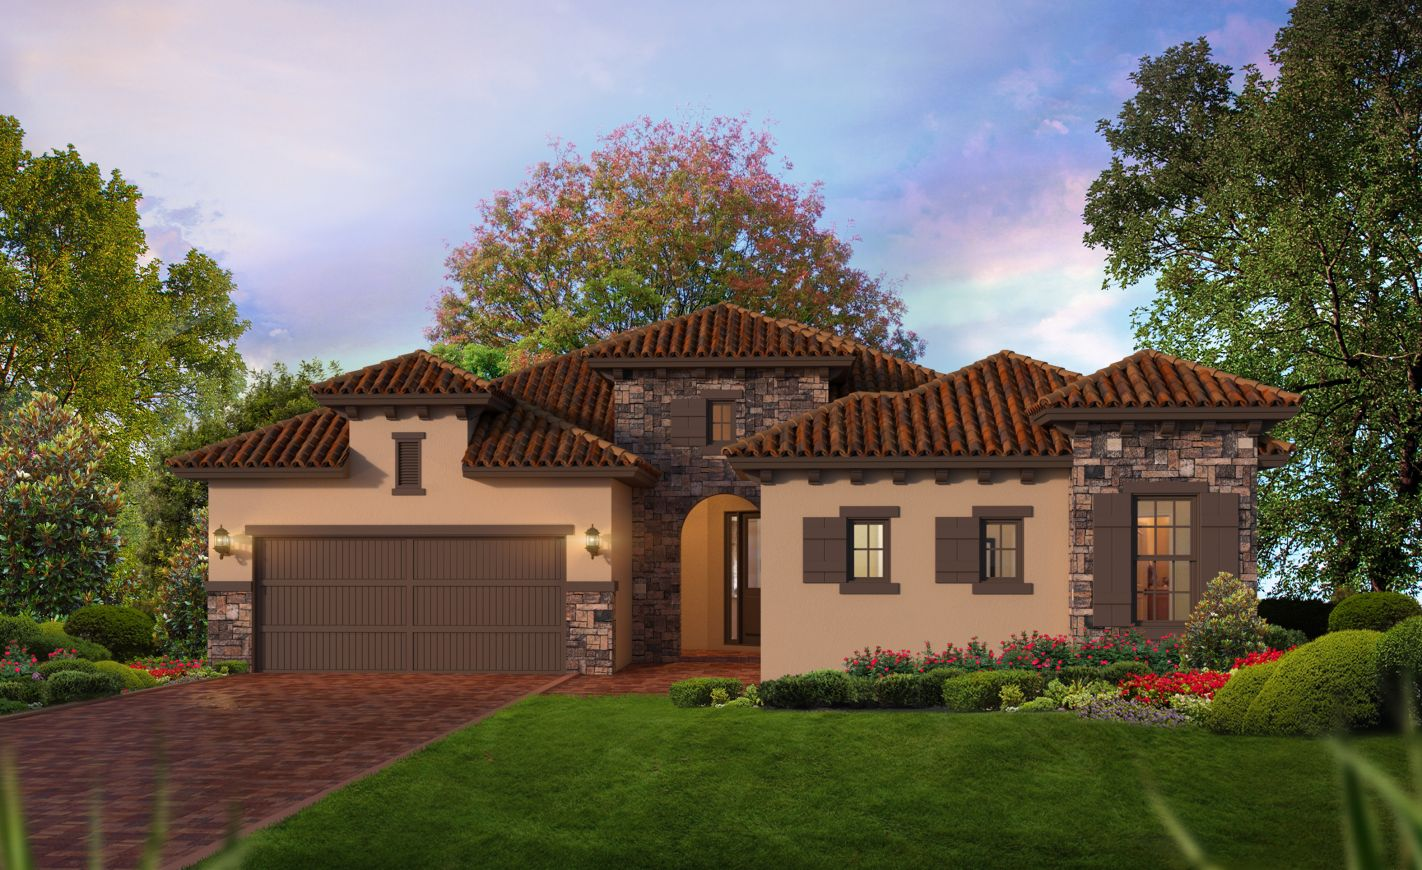 New Homes for Sale Ormond Beach FL - The Vienna at Plantation Bay